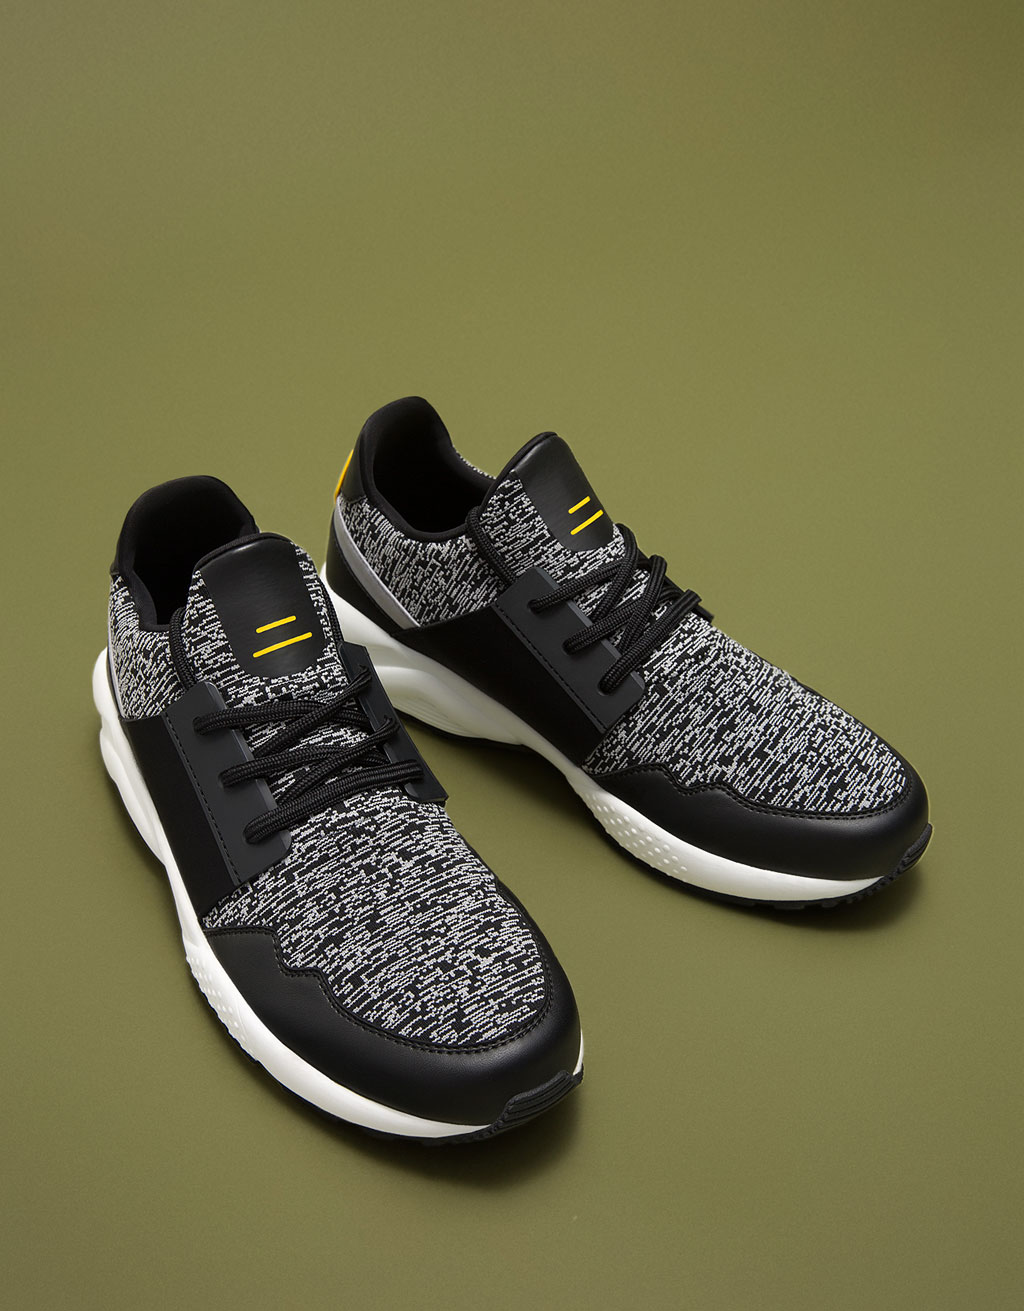 Lace-up sneakers in technical fabric